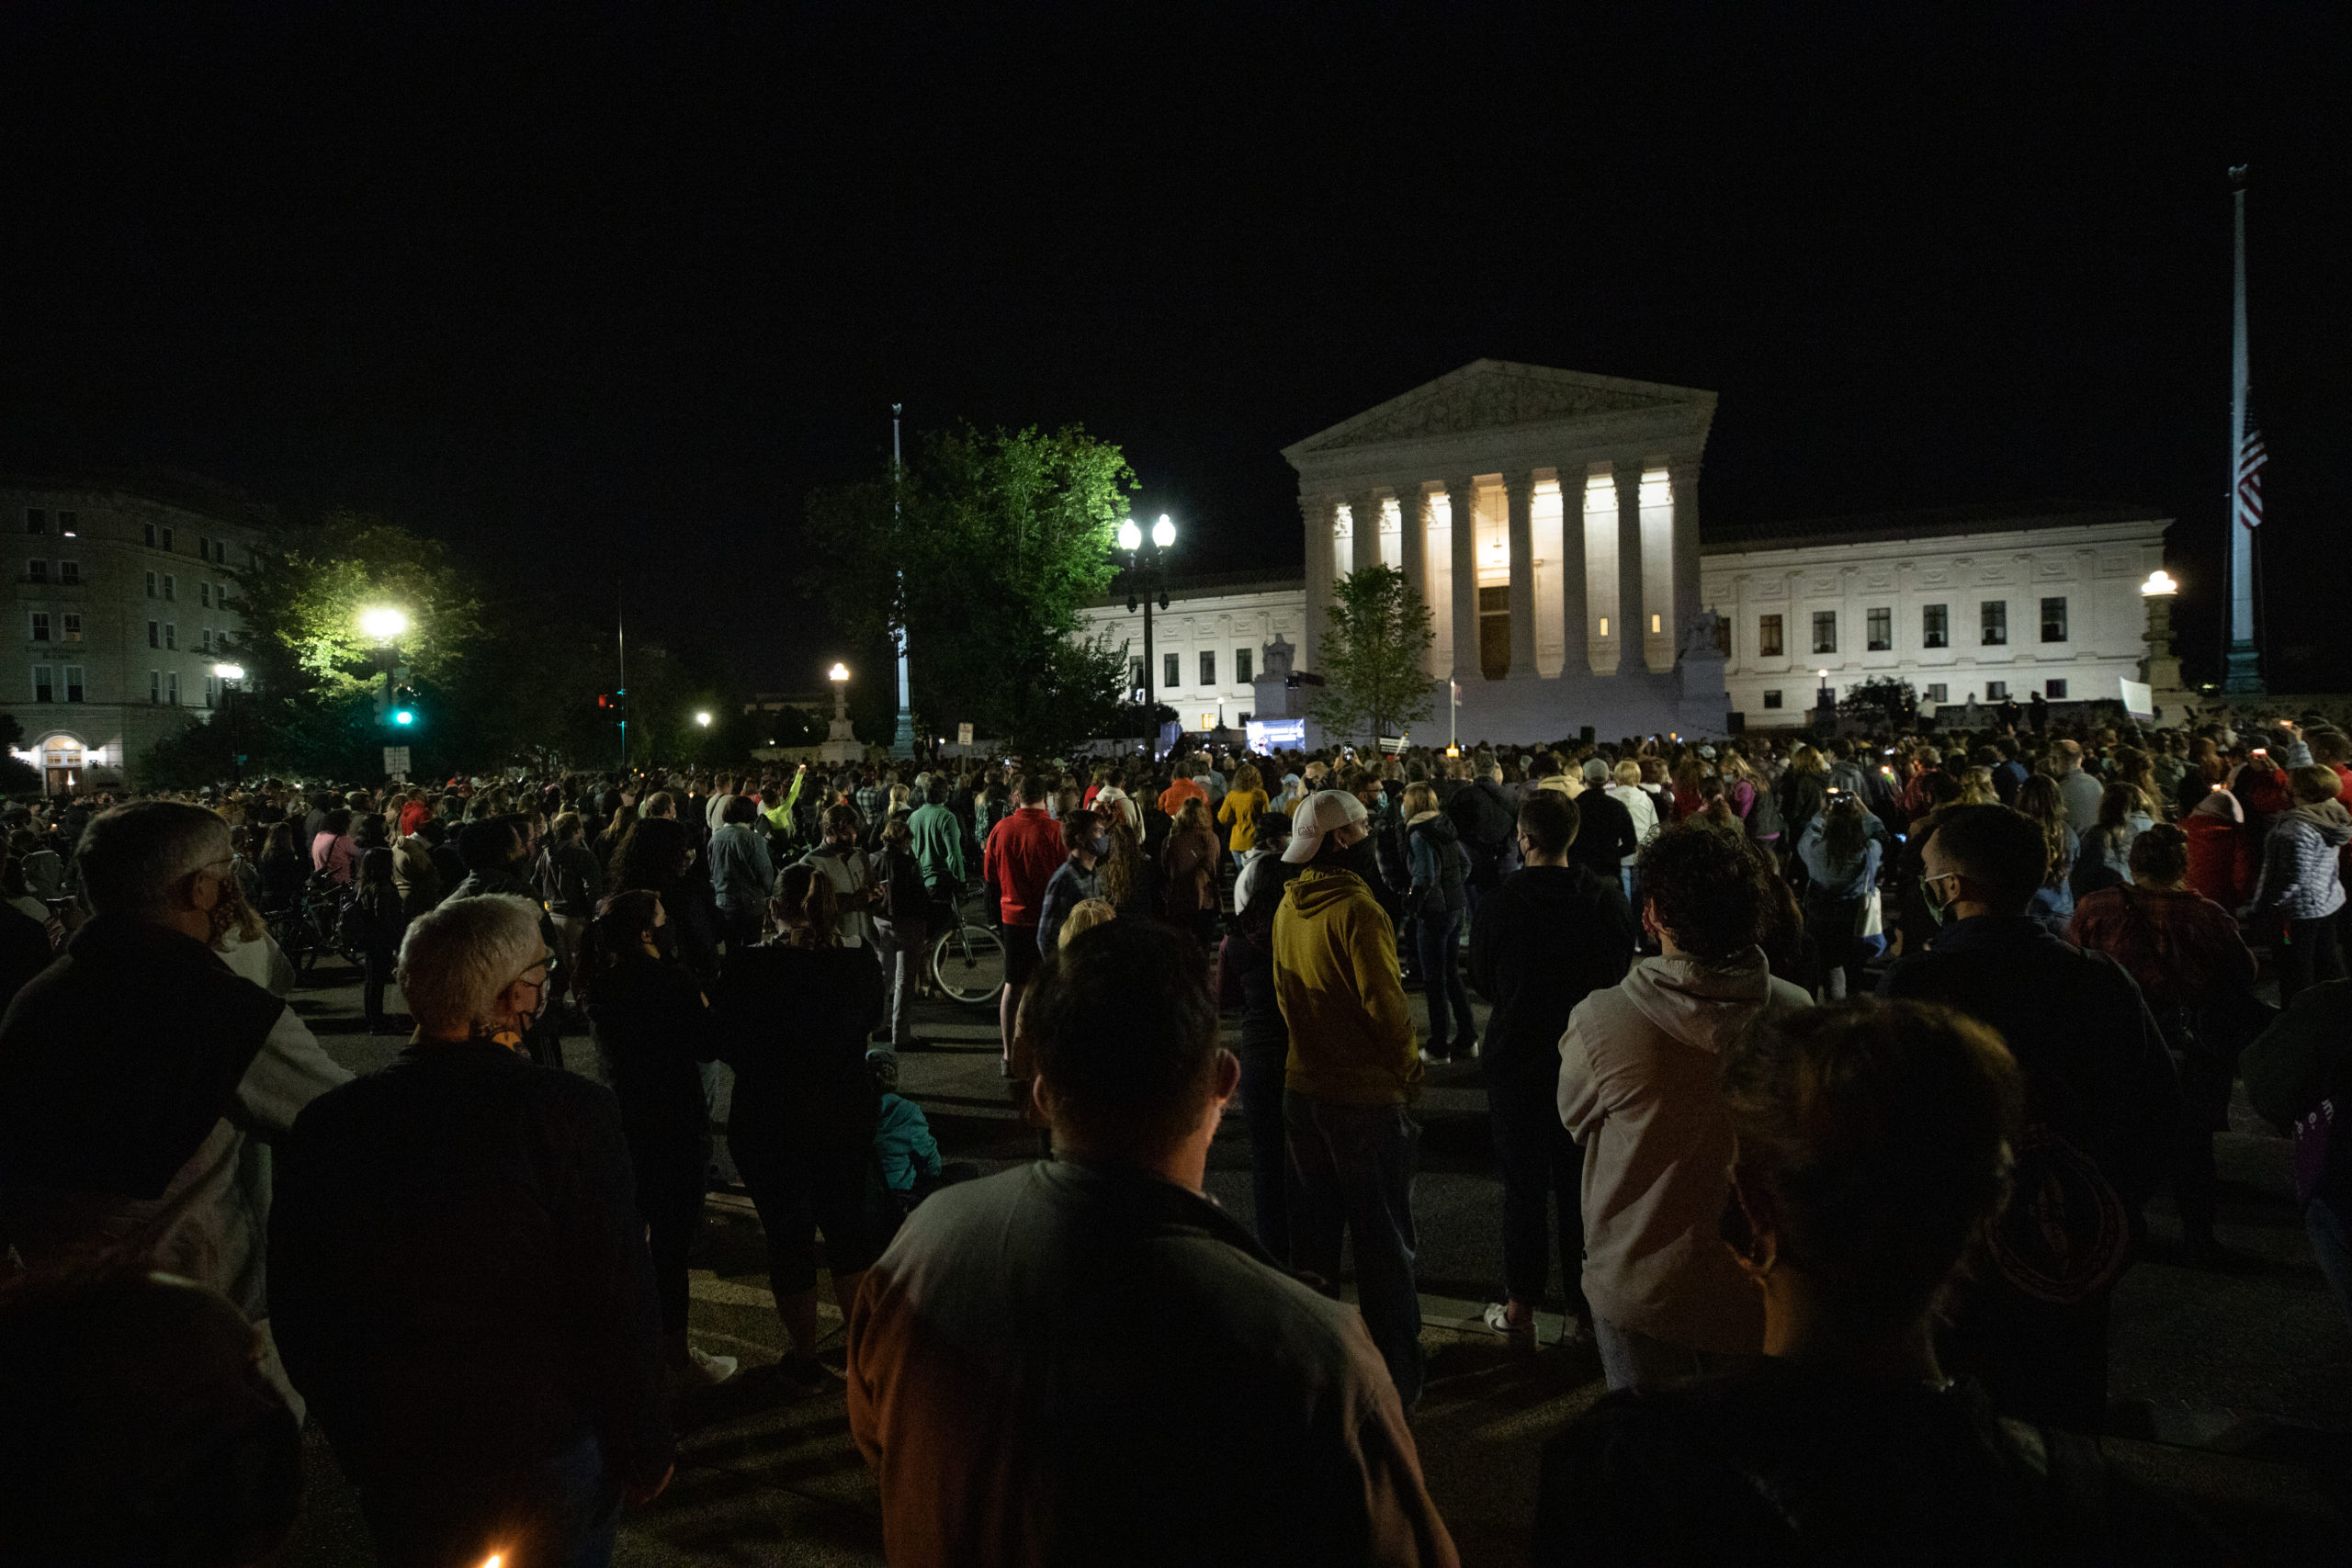 Hundreds gather at the Supreme Court for a memorial honoring the late Justice Ruth Bader Ginsburg on Sept. 19, 2020. (Photo: Kaylee Greenlee / The DCNF)